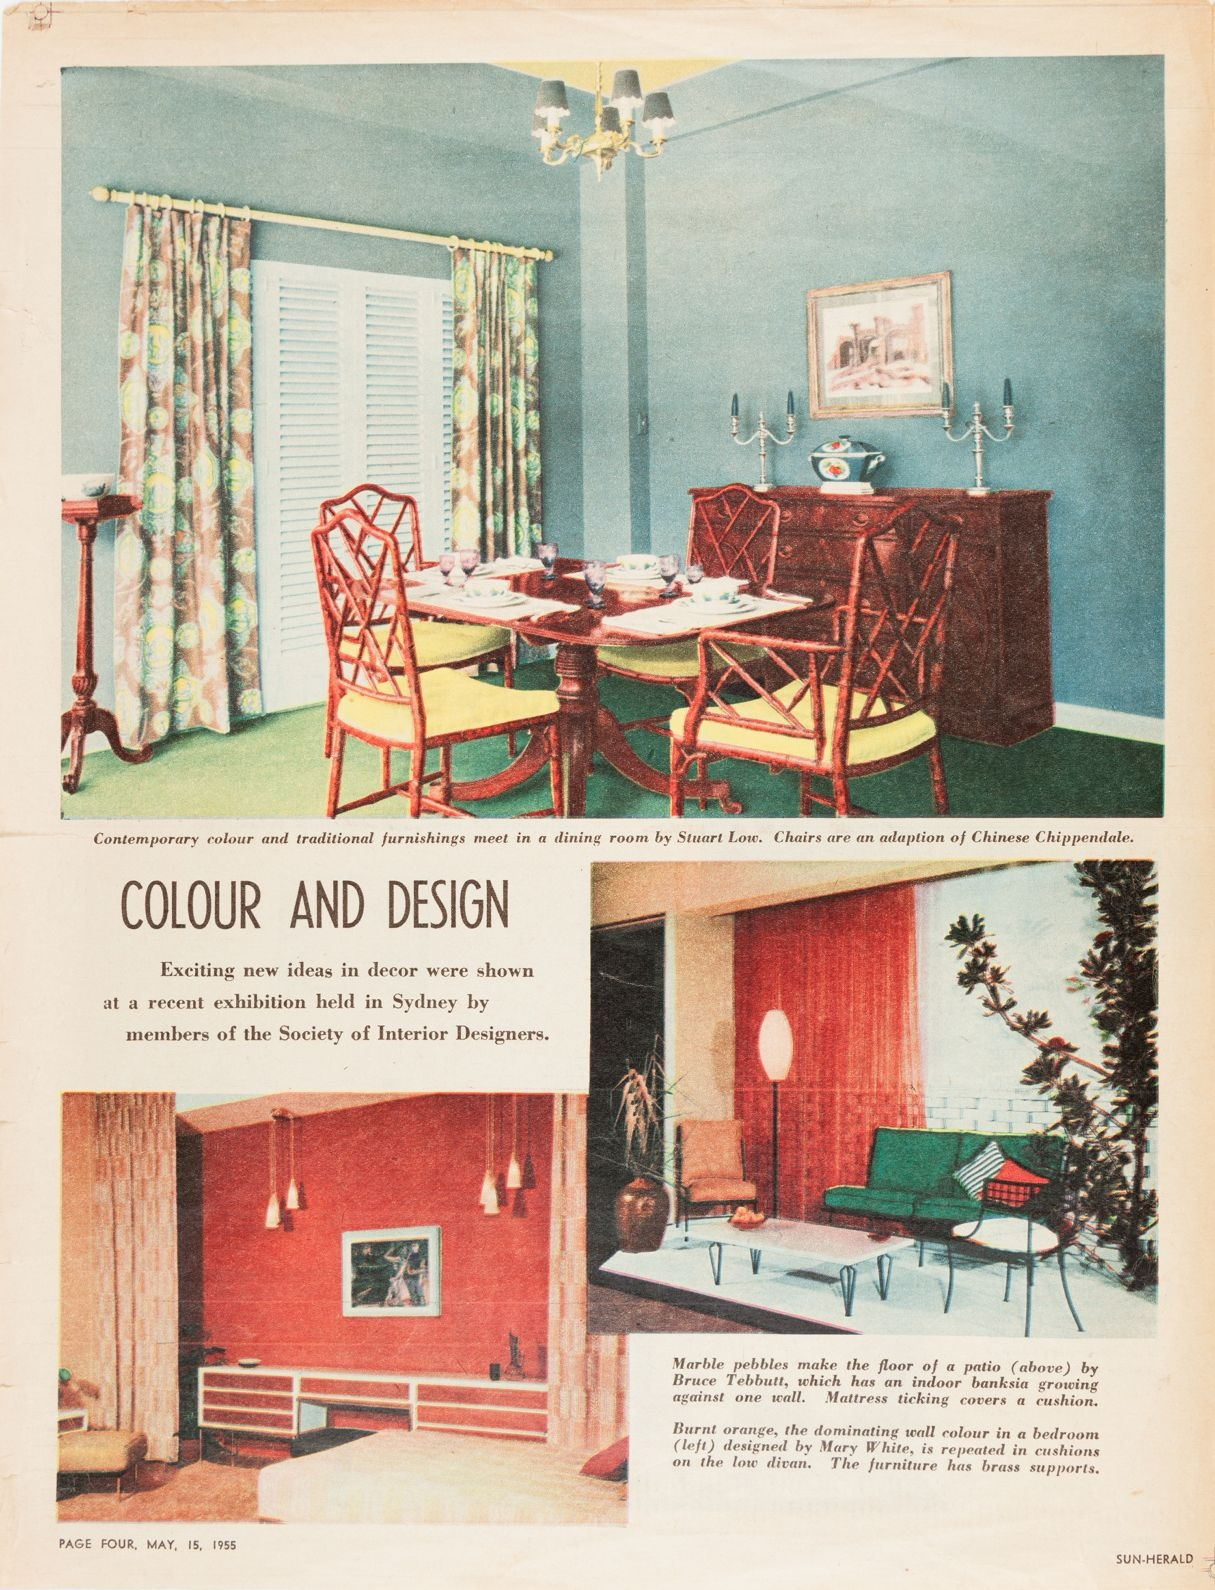 Society of Interior Designers (SID) exhibition, 1955